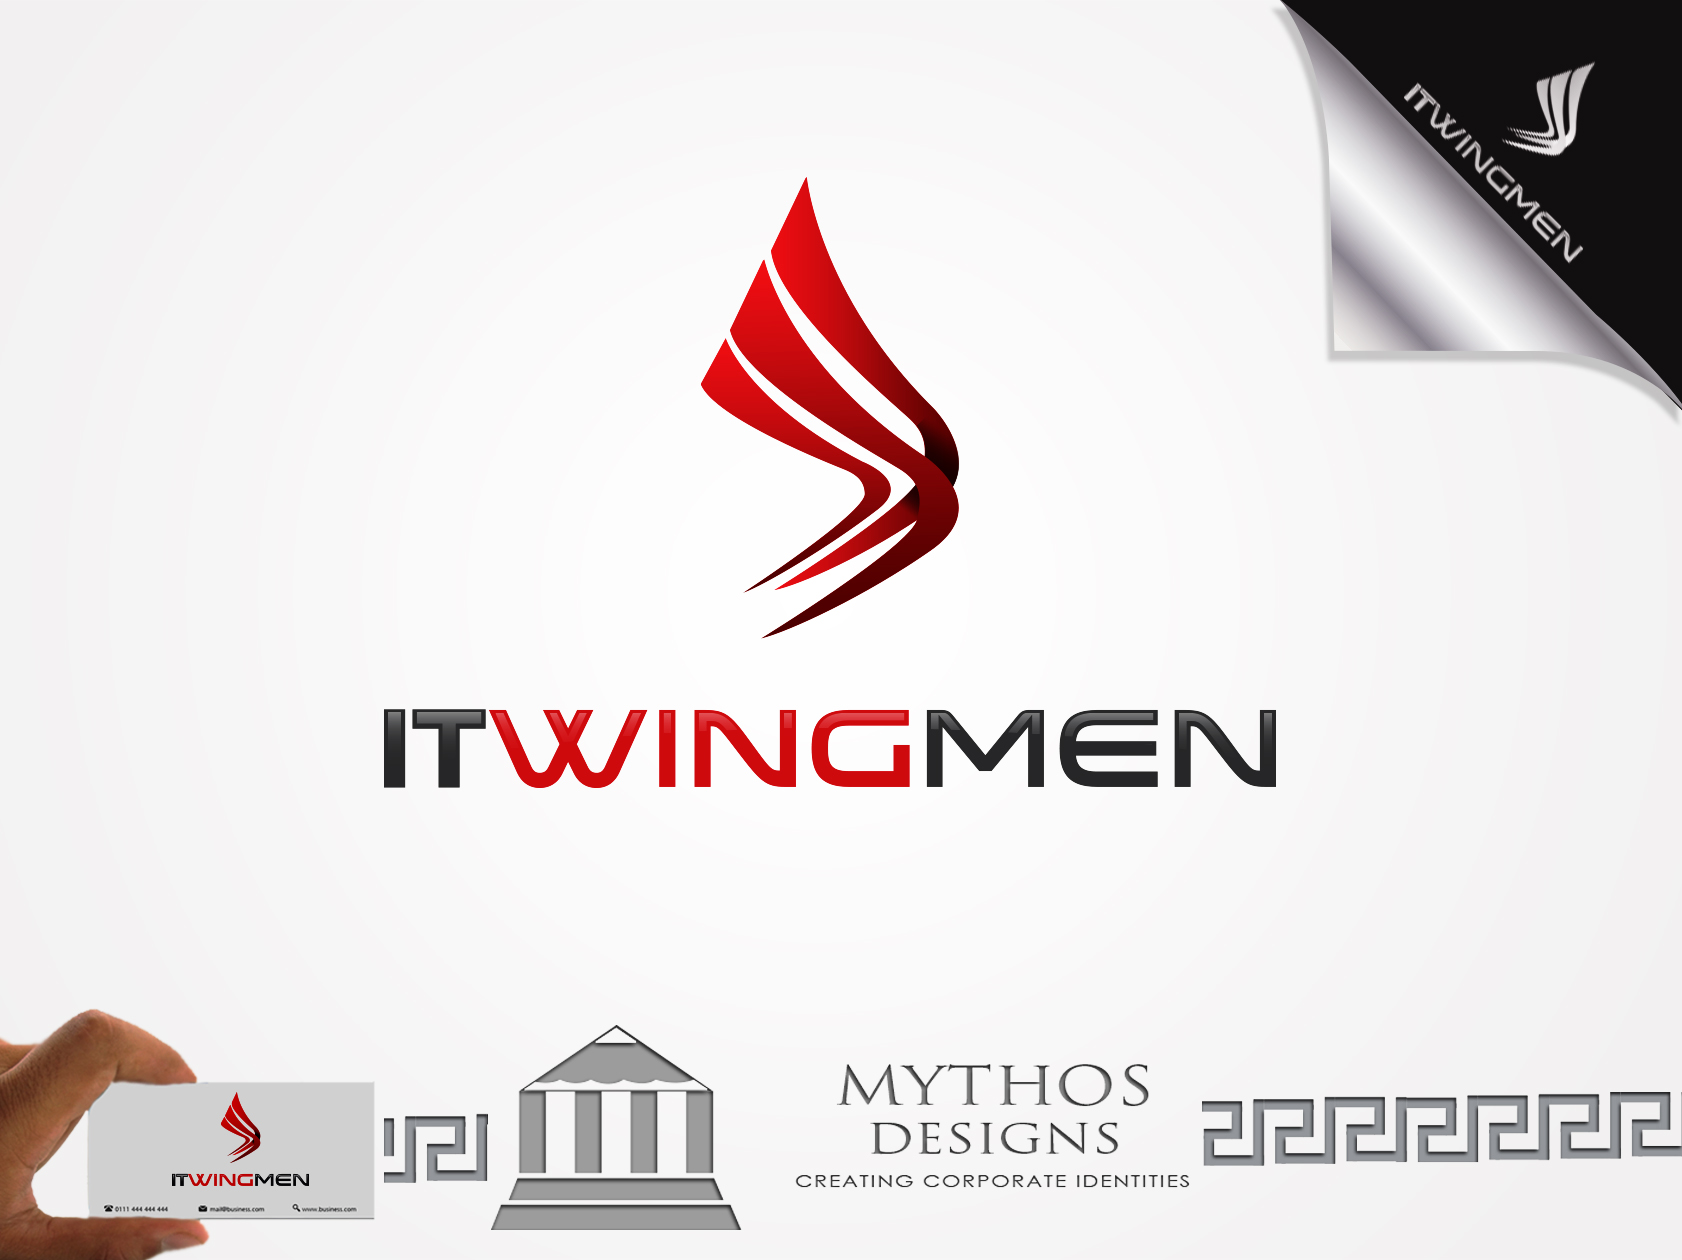 Logo Design by Mythos Designs - Entry No. 112 in the Logo Design Contest New Logo Design for IT Wingmen.